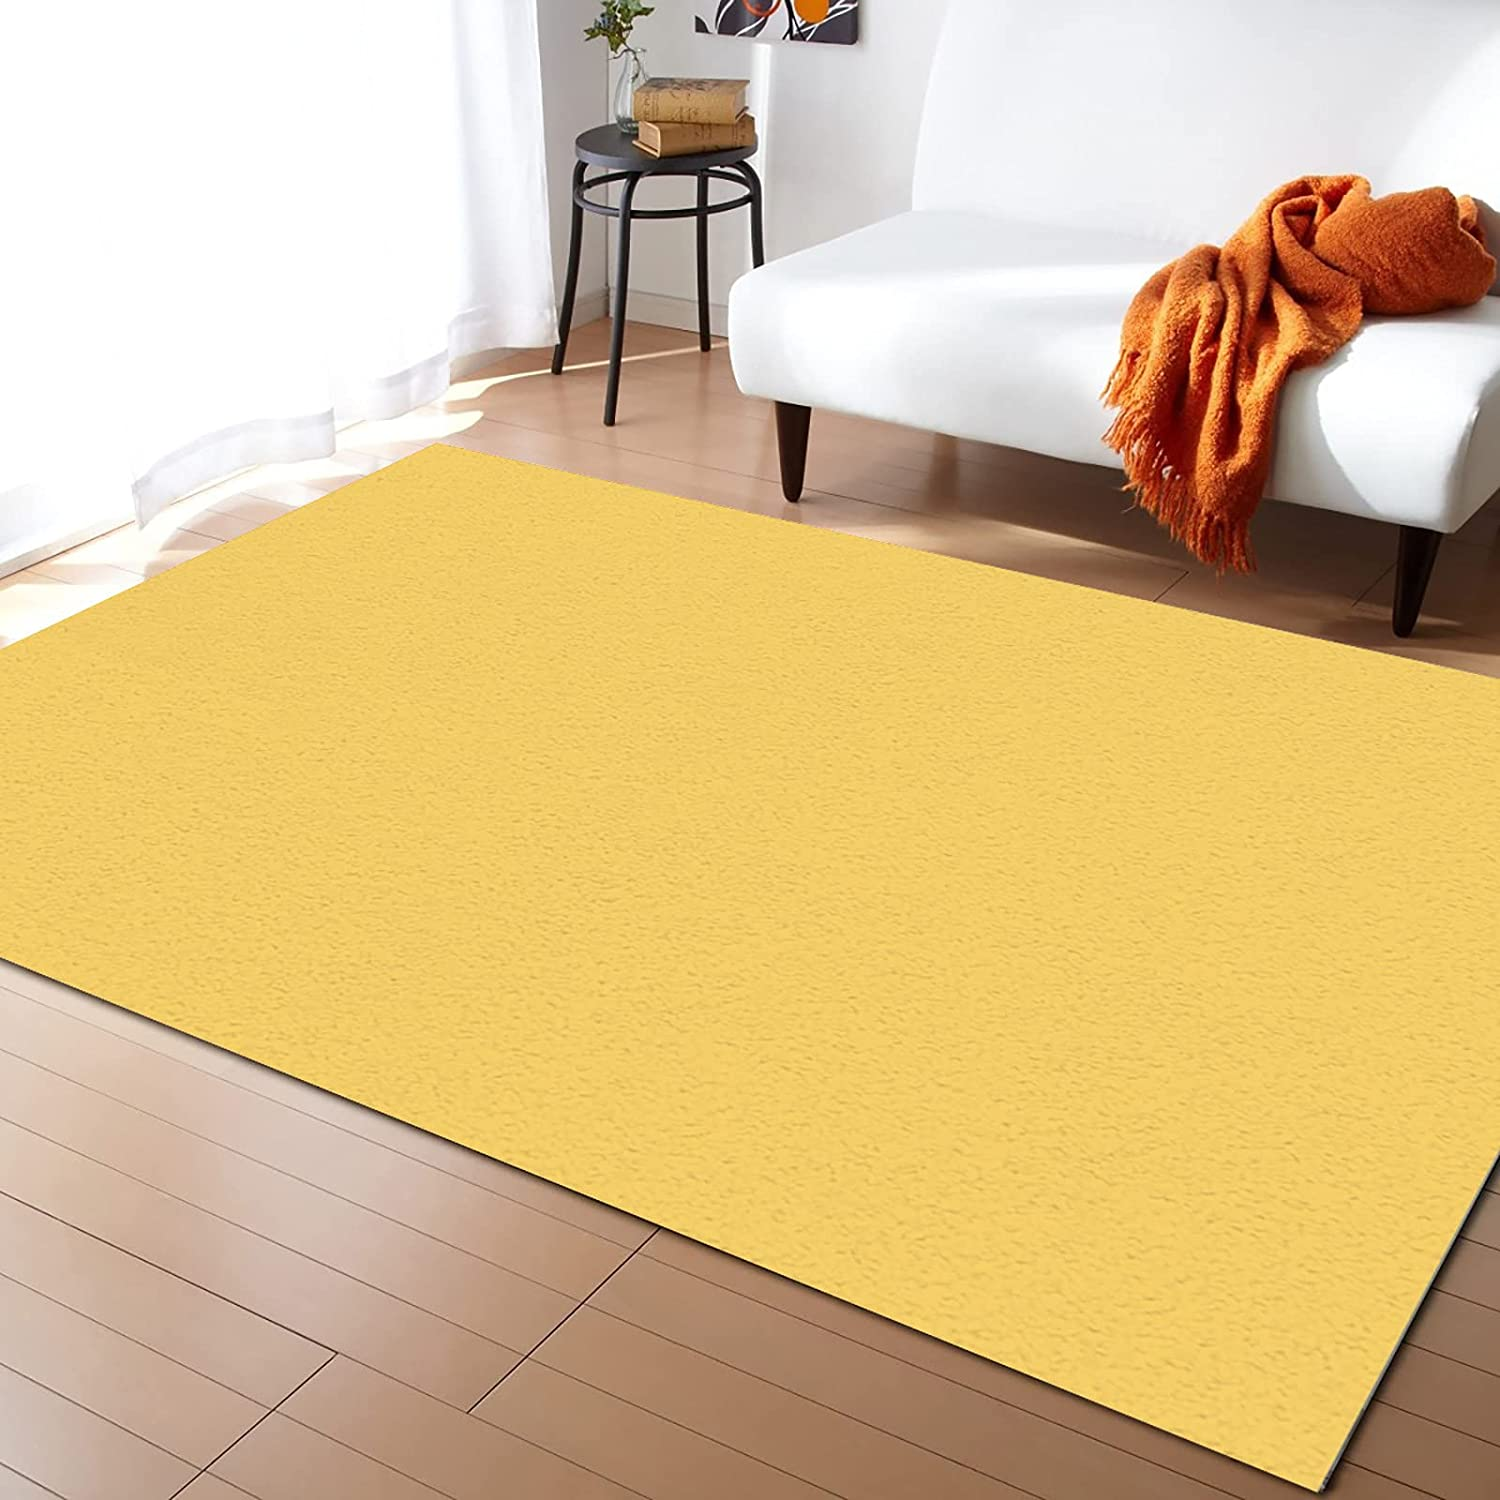 Olivefox 4x6 Feet Floor Mat mart Area Solid Yellow R Rug Color Detroit Mall